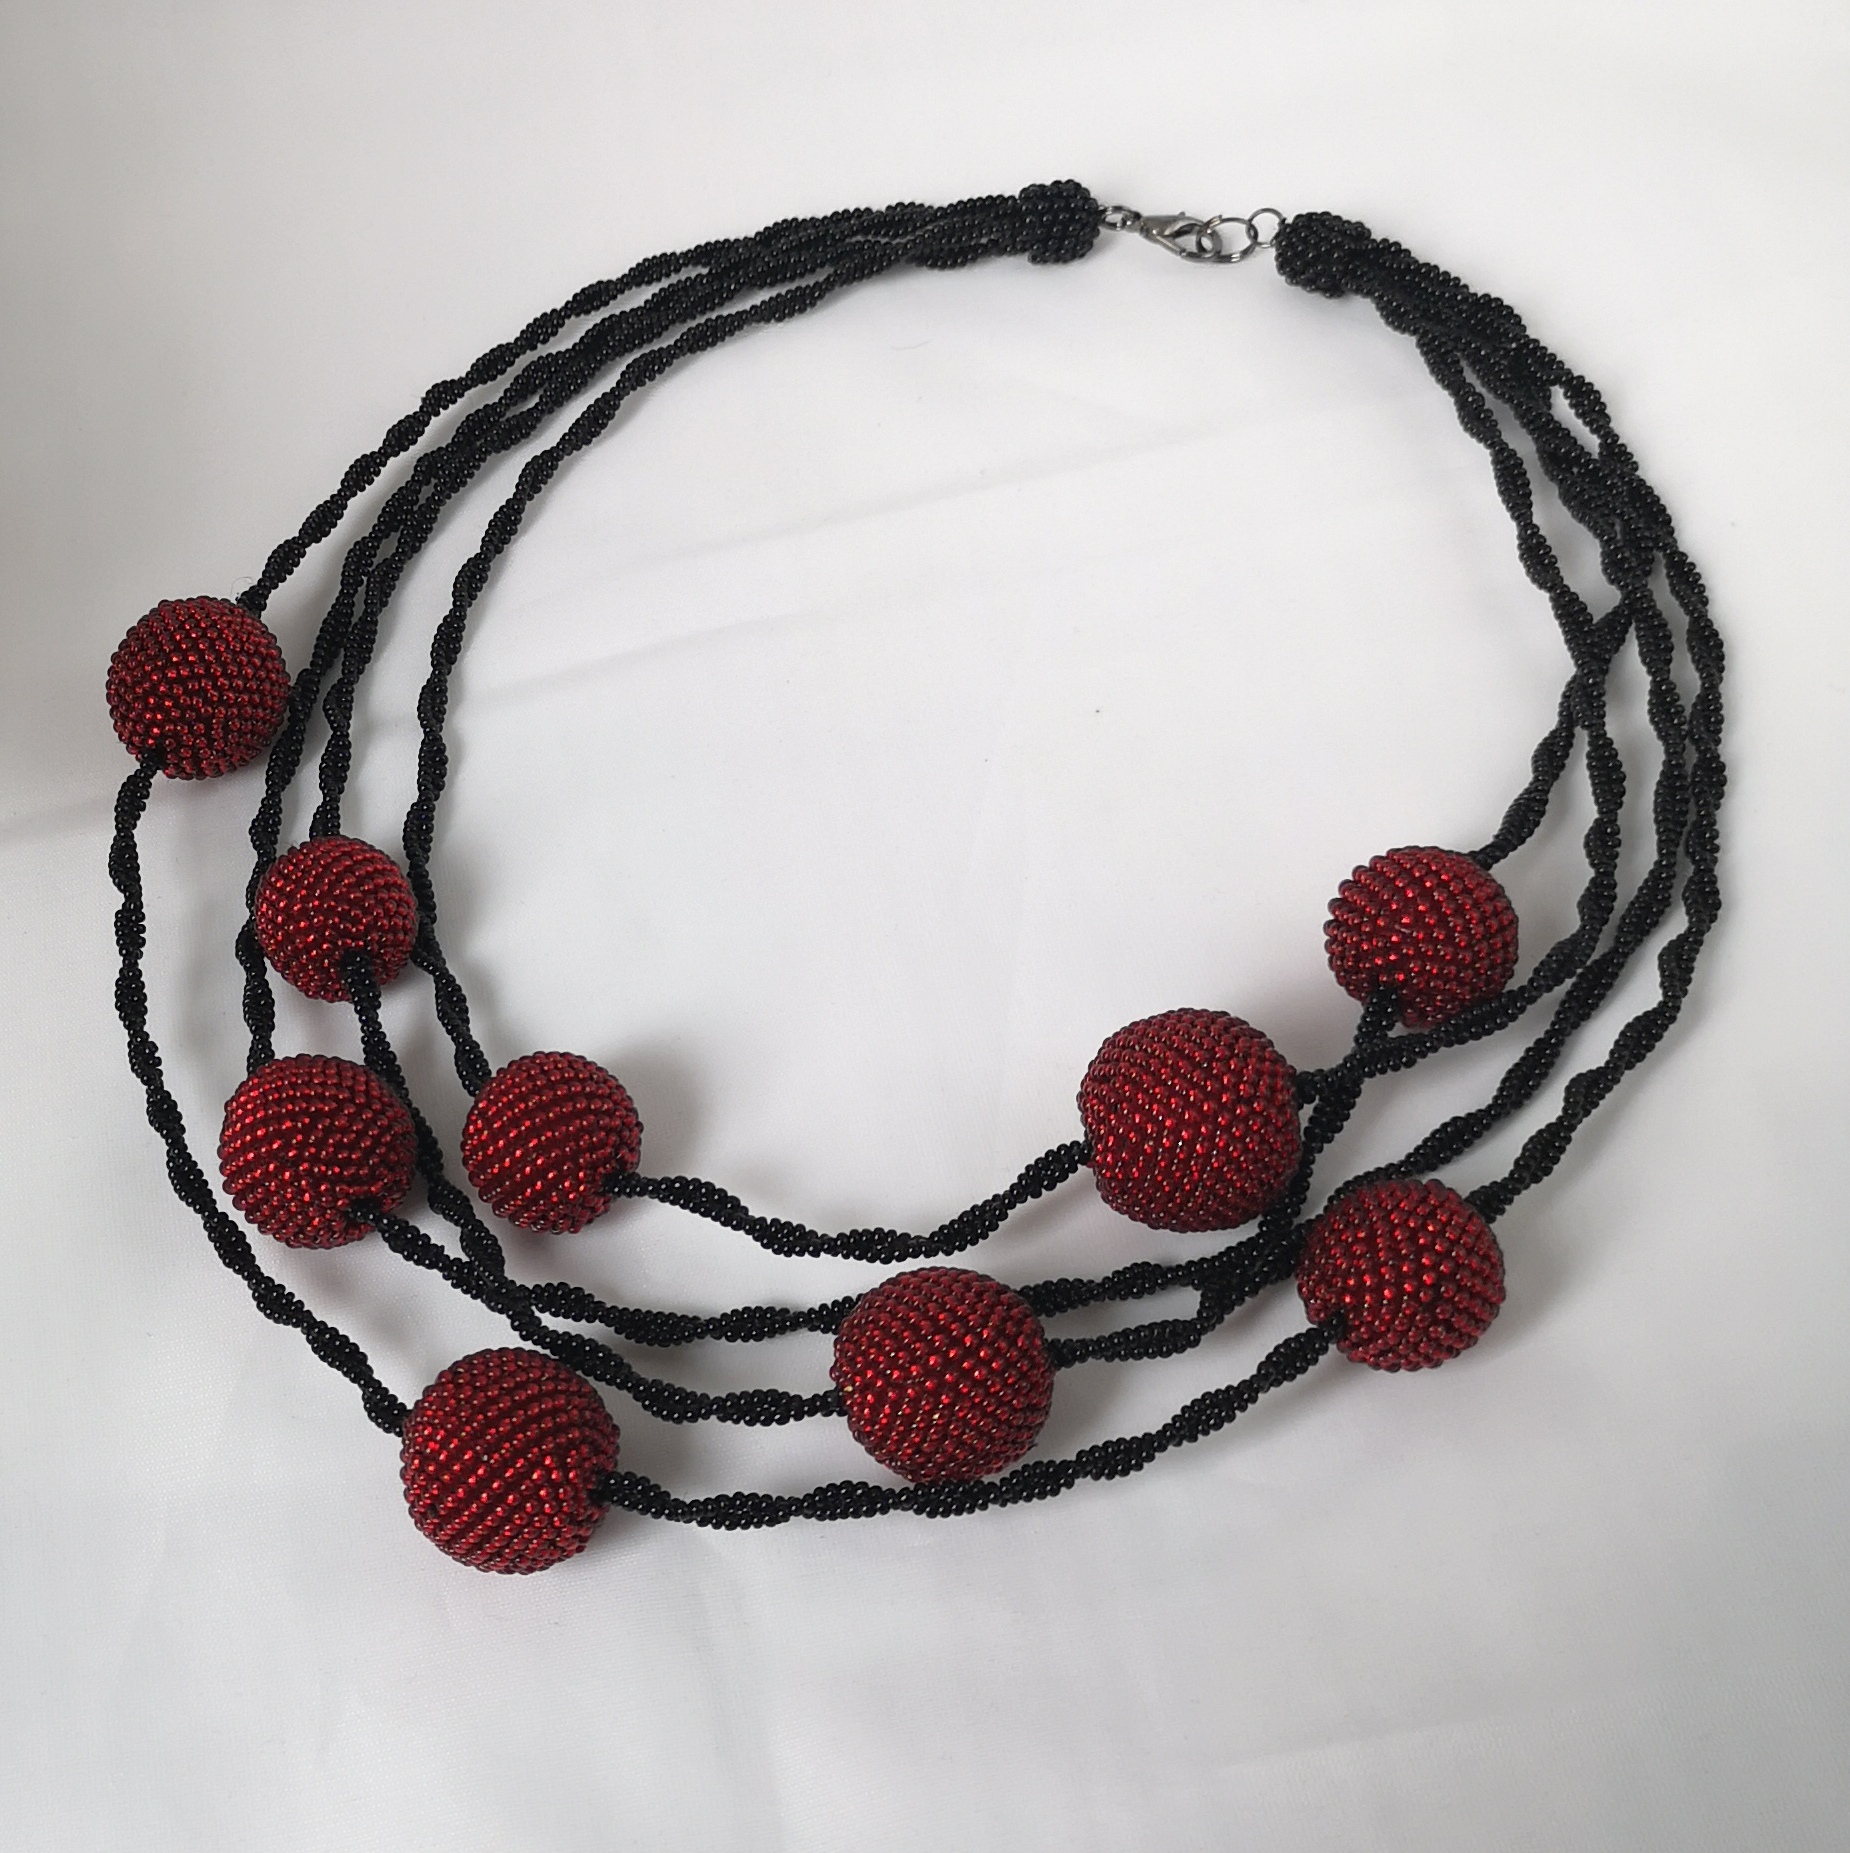 seed beads necklac (17)20069